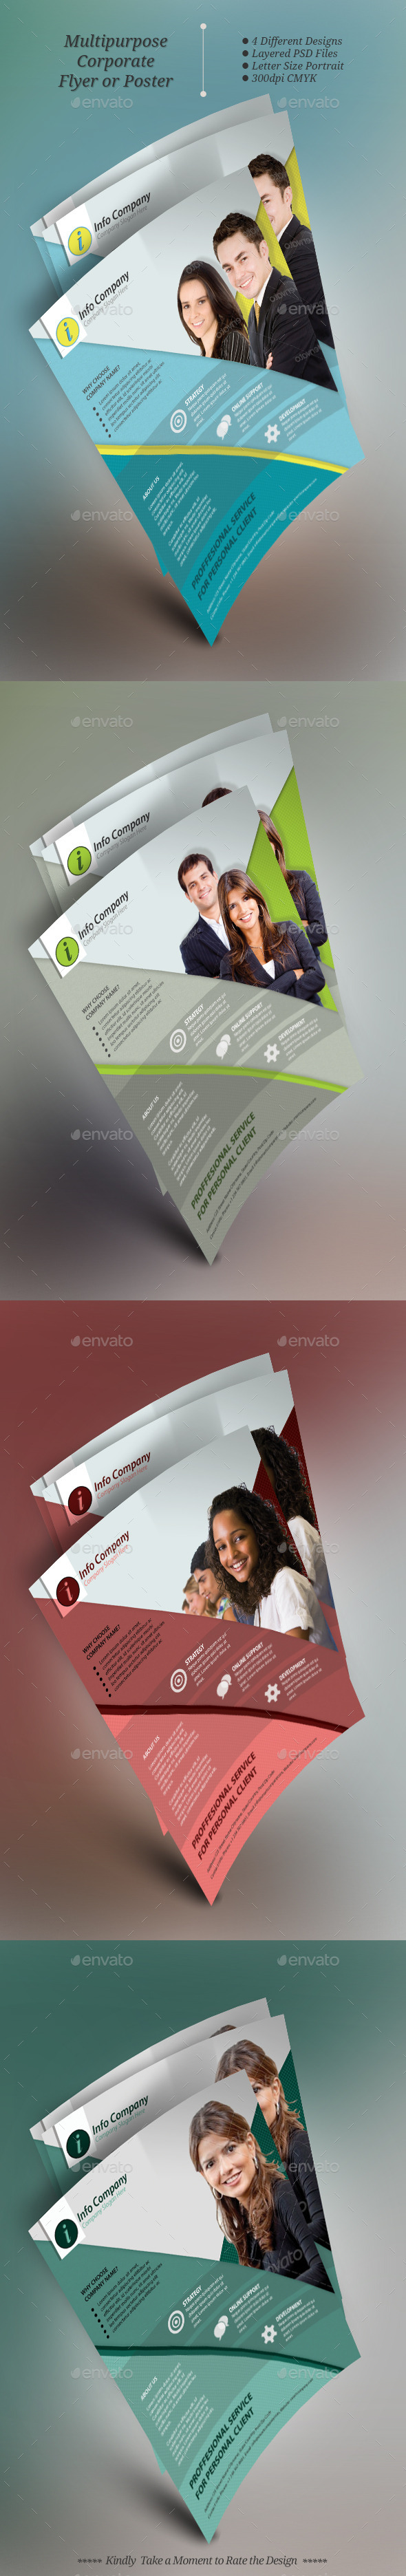 Multipurpose Corporate Flyer Templates